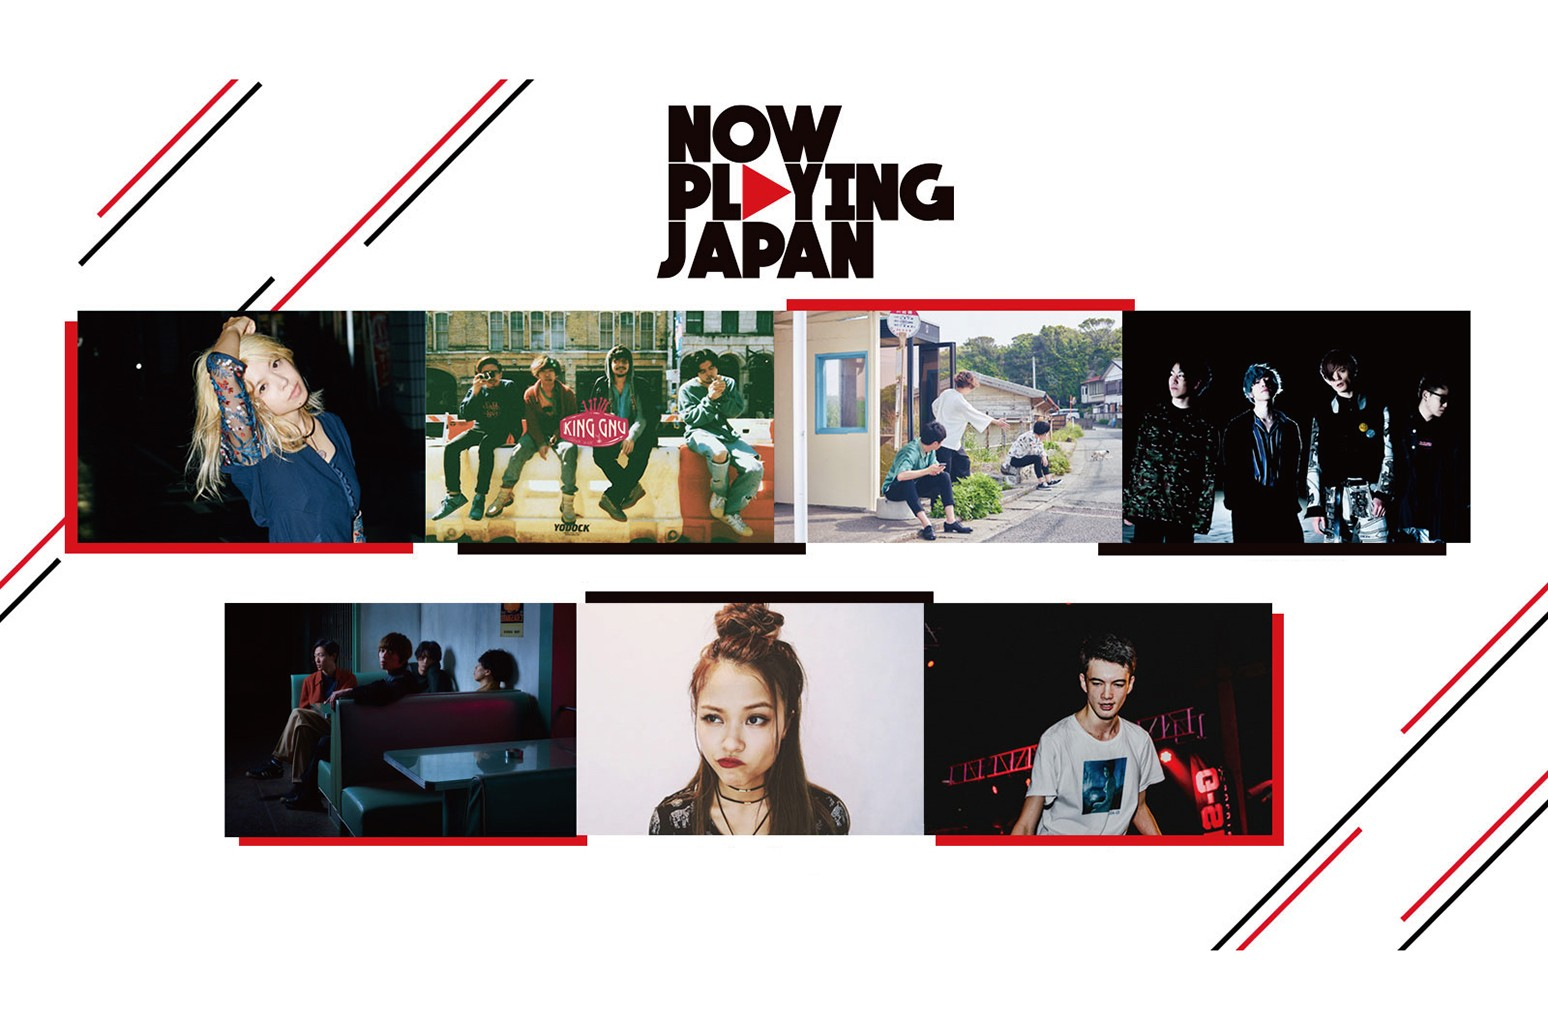 Now Playing Japan